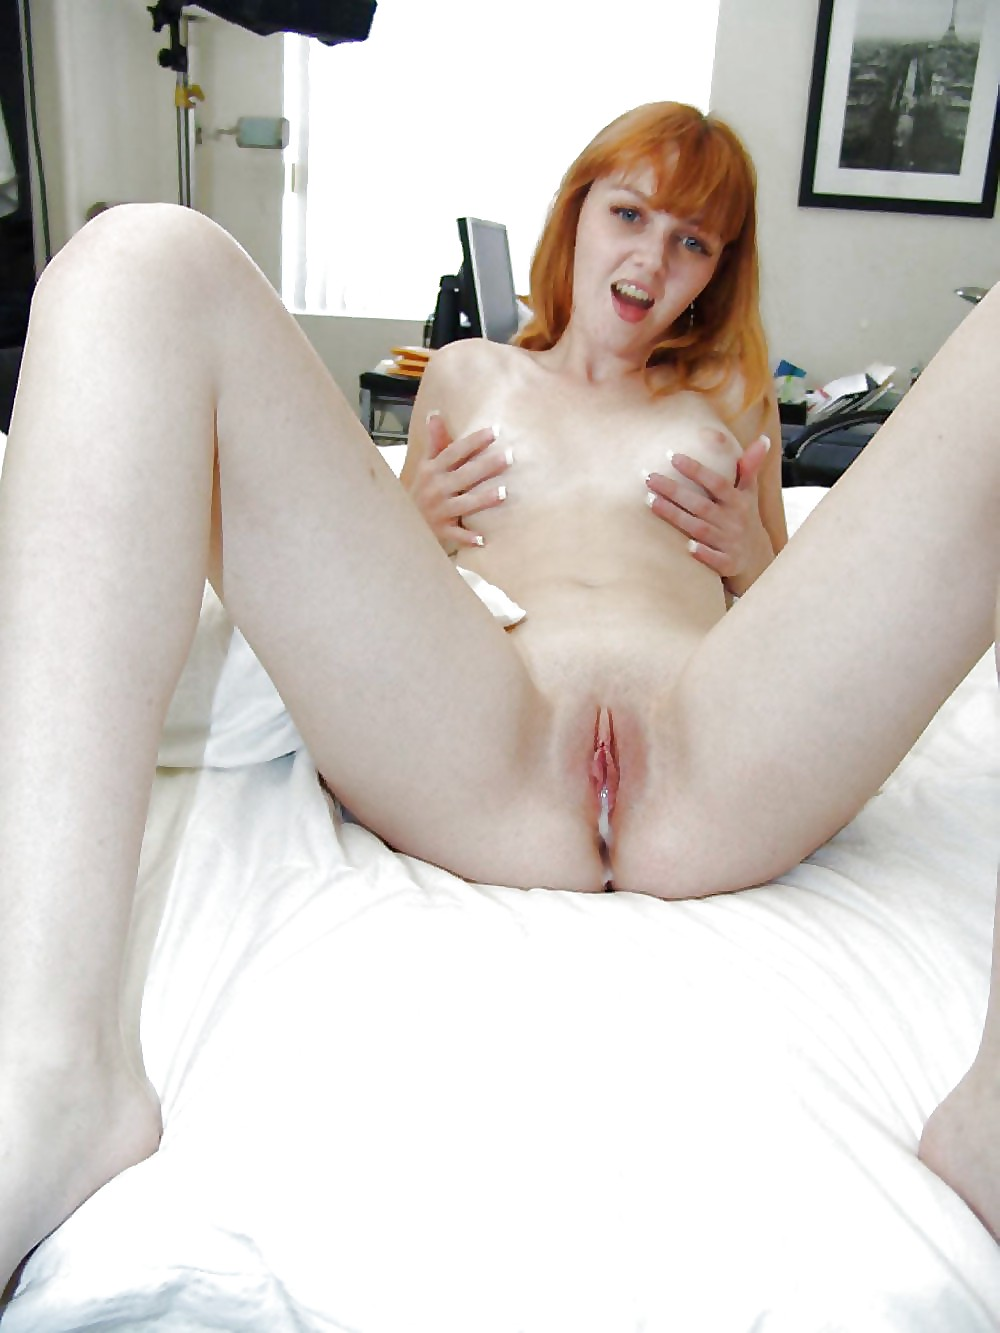 Hot naked red head cream pie sex